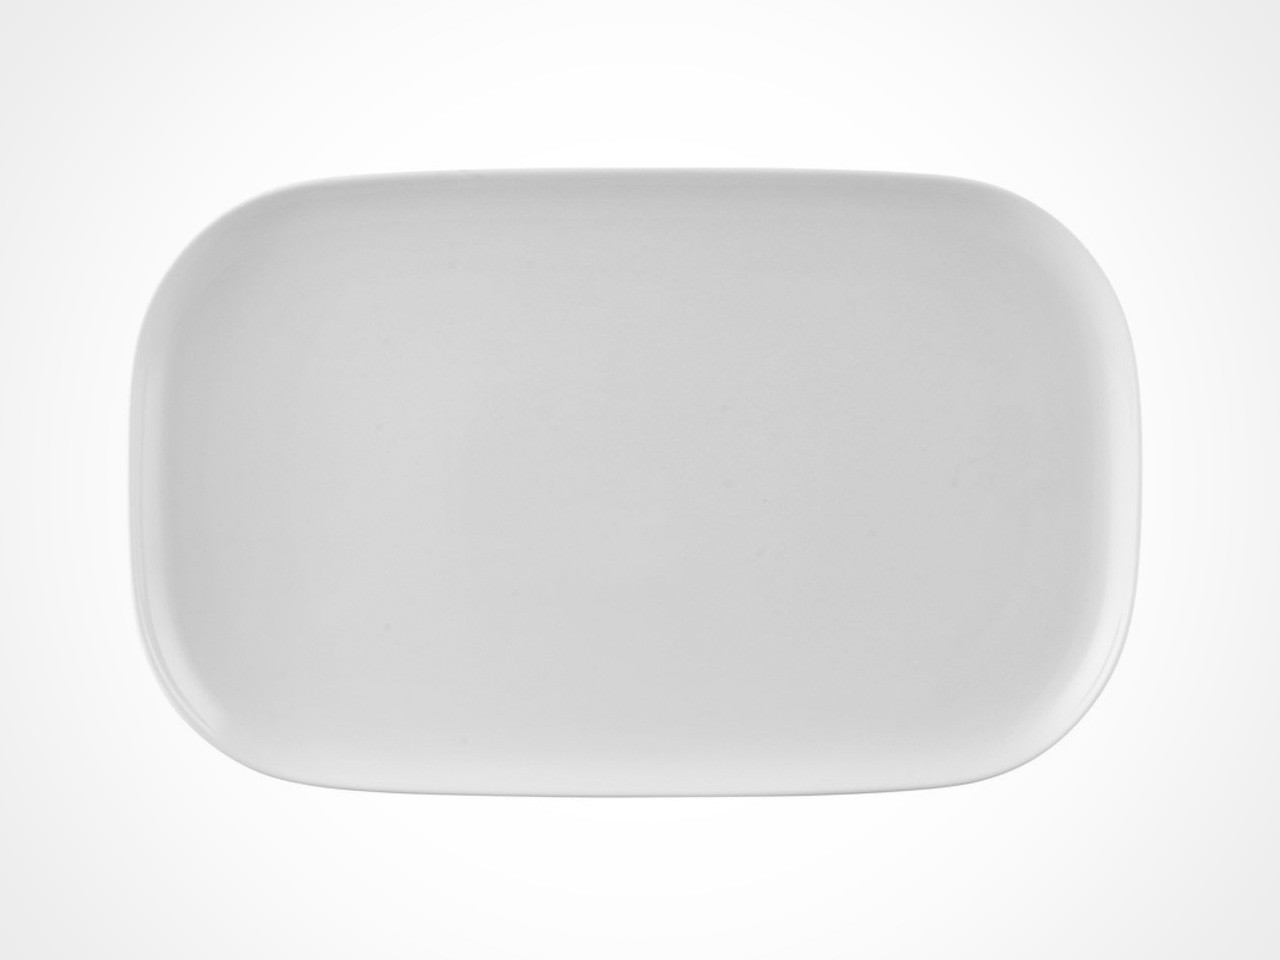 Rosenthal Moon White serving platter on white background.